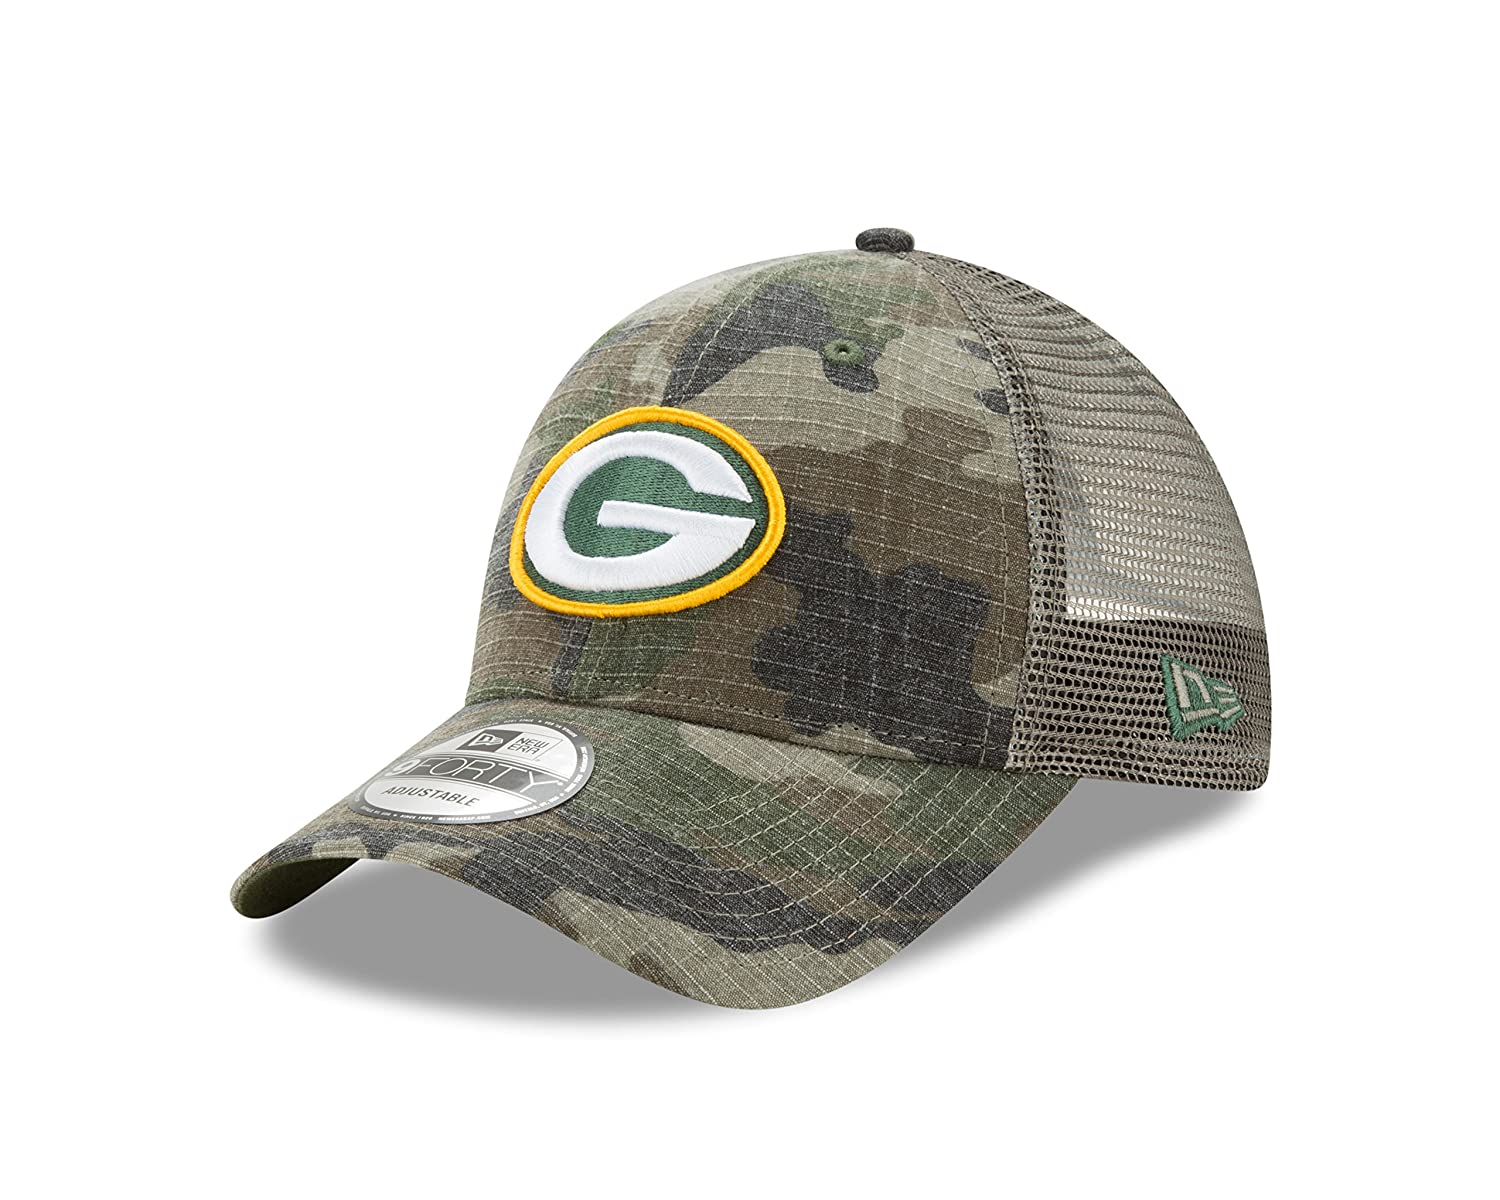 Amazon.com   Green Bay Packers Camo Trucker Duel New Era 9FORTY Adjustable Snapback  Hat   Cap   Sports   Outdoors 4259b7800db